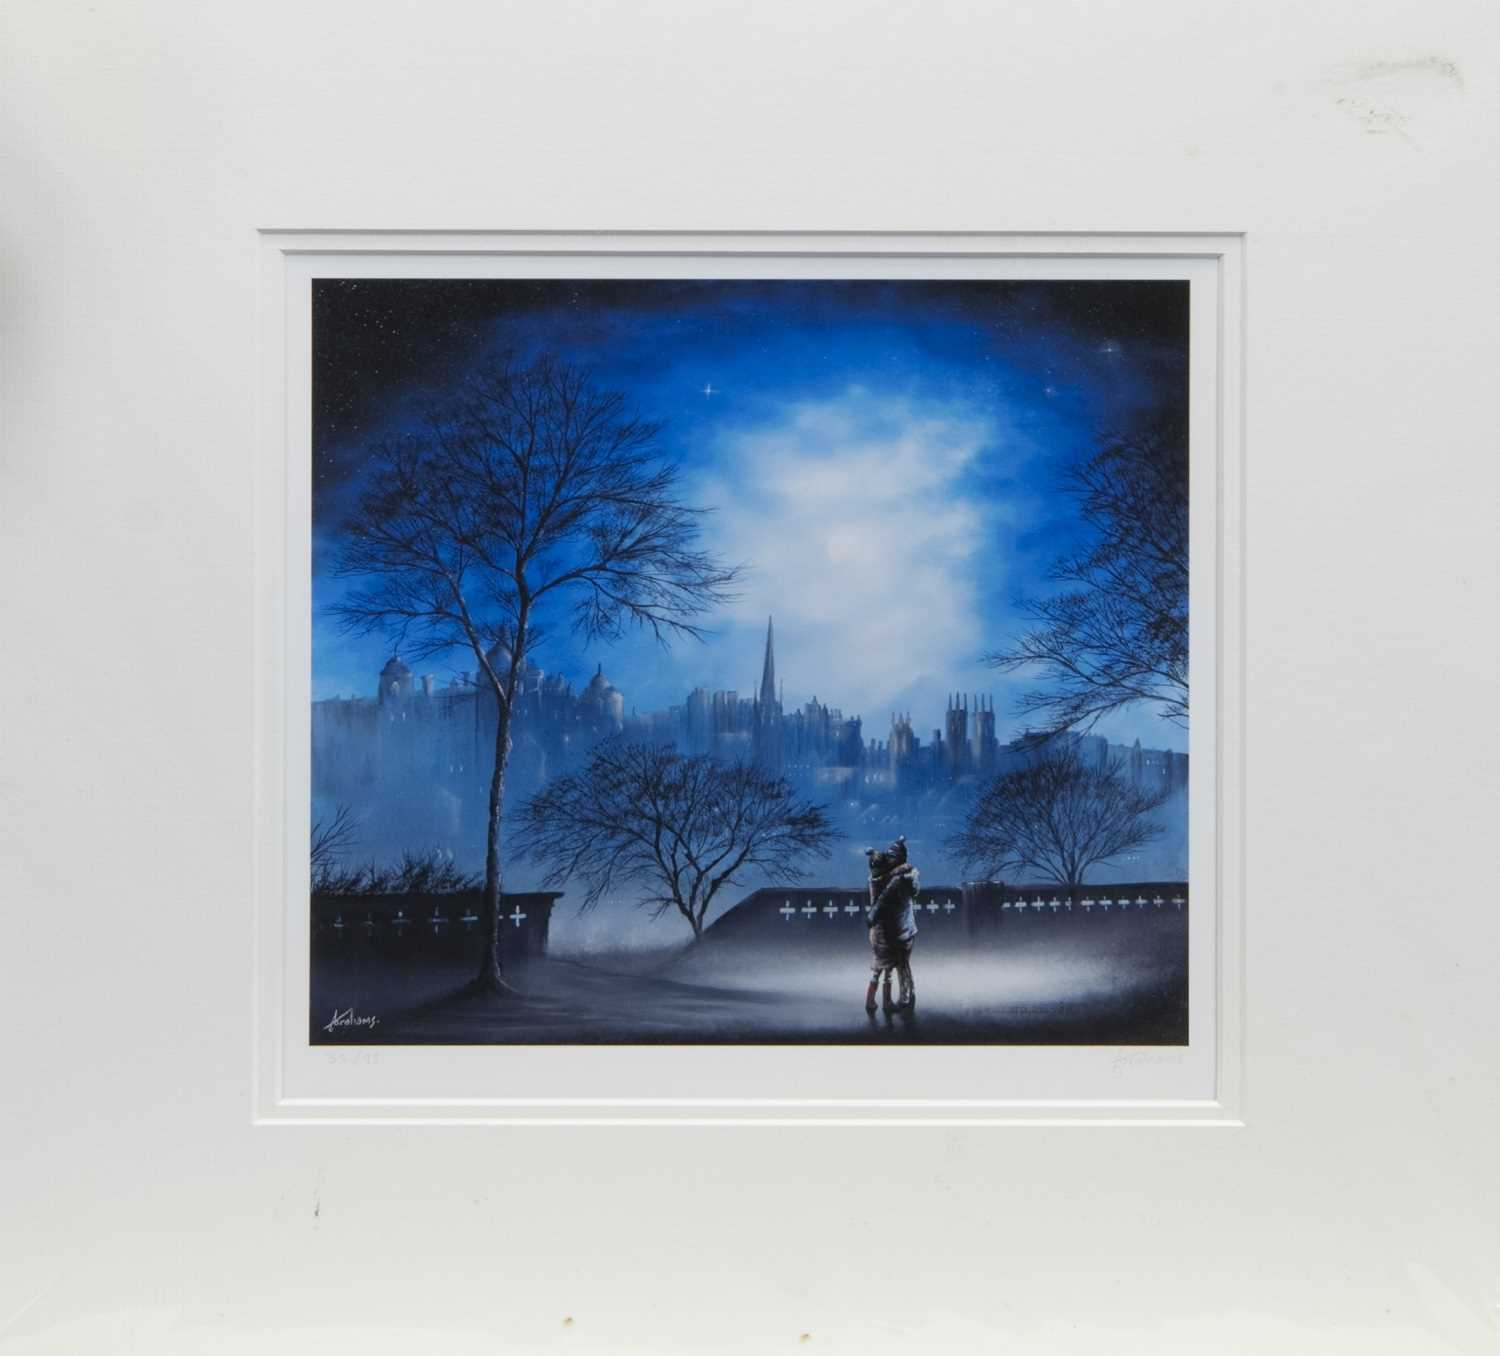 Lot 100 - EDINBURGH NIGHTS, A PRINT BY DANNY ABRAHAMS